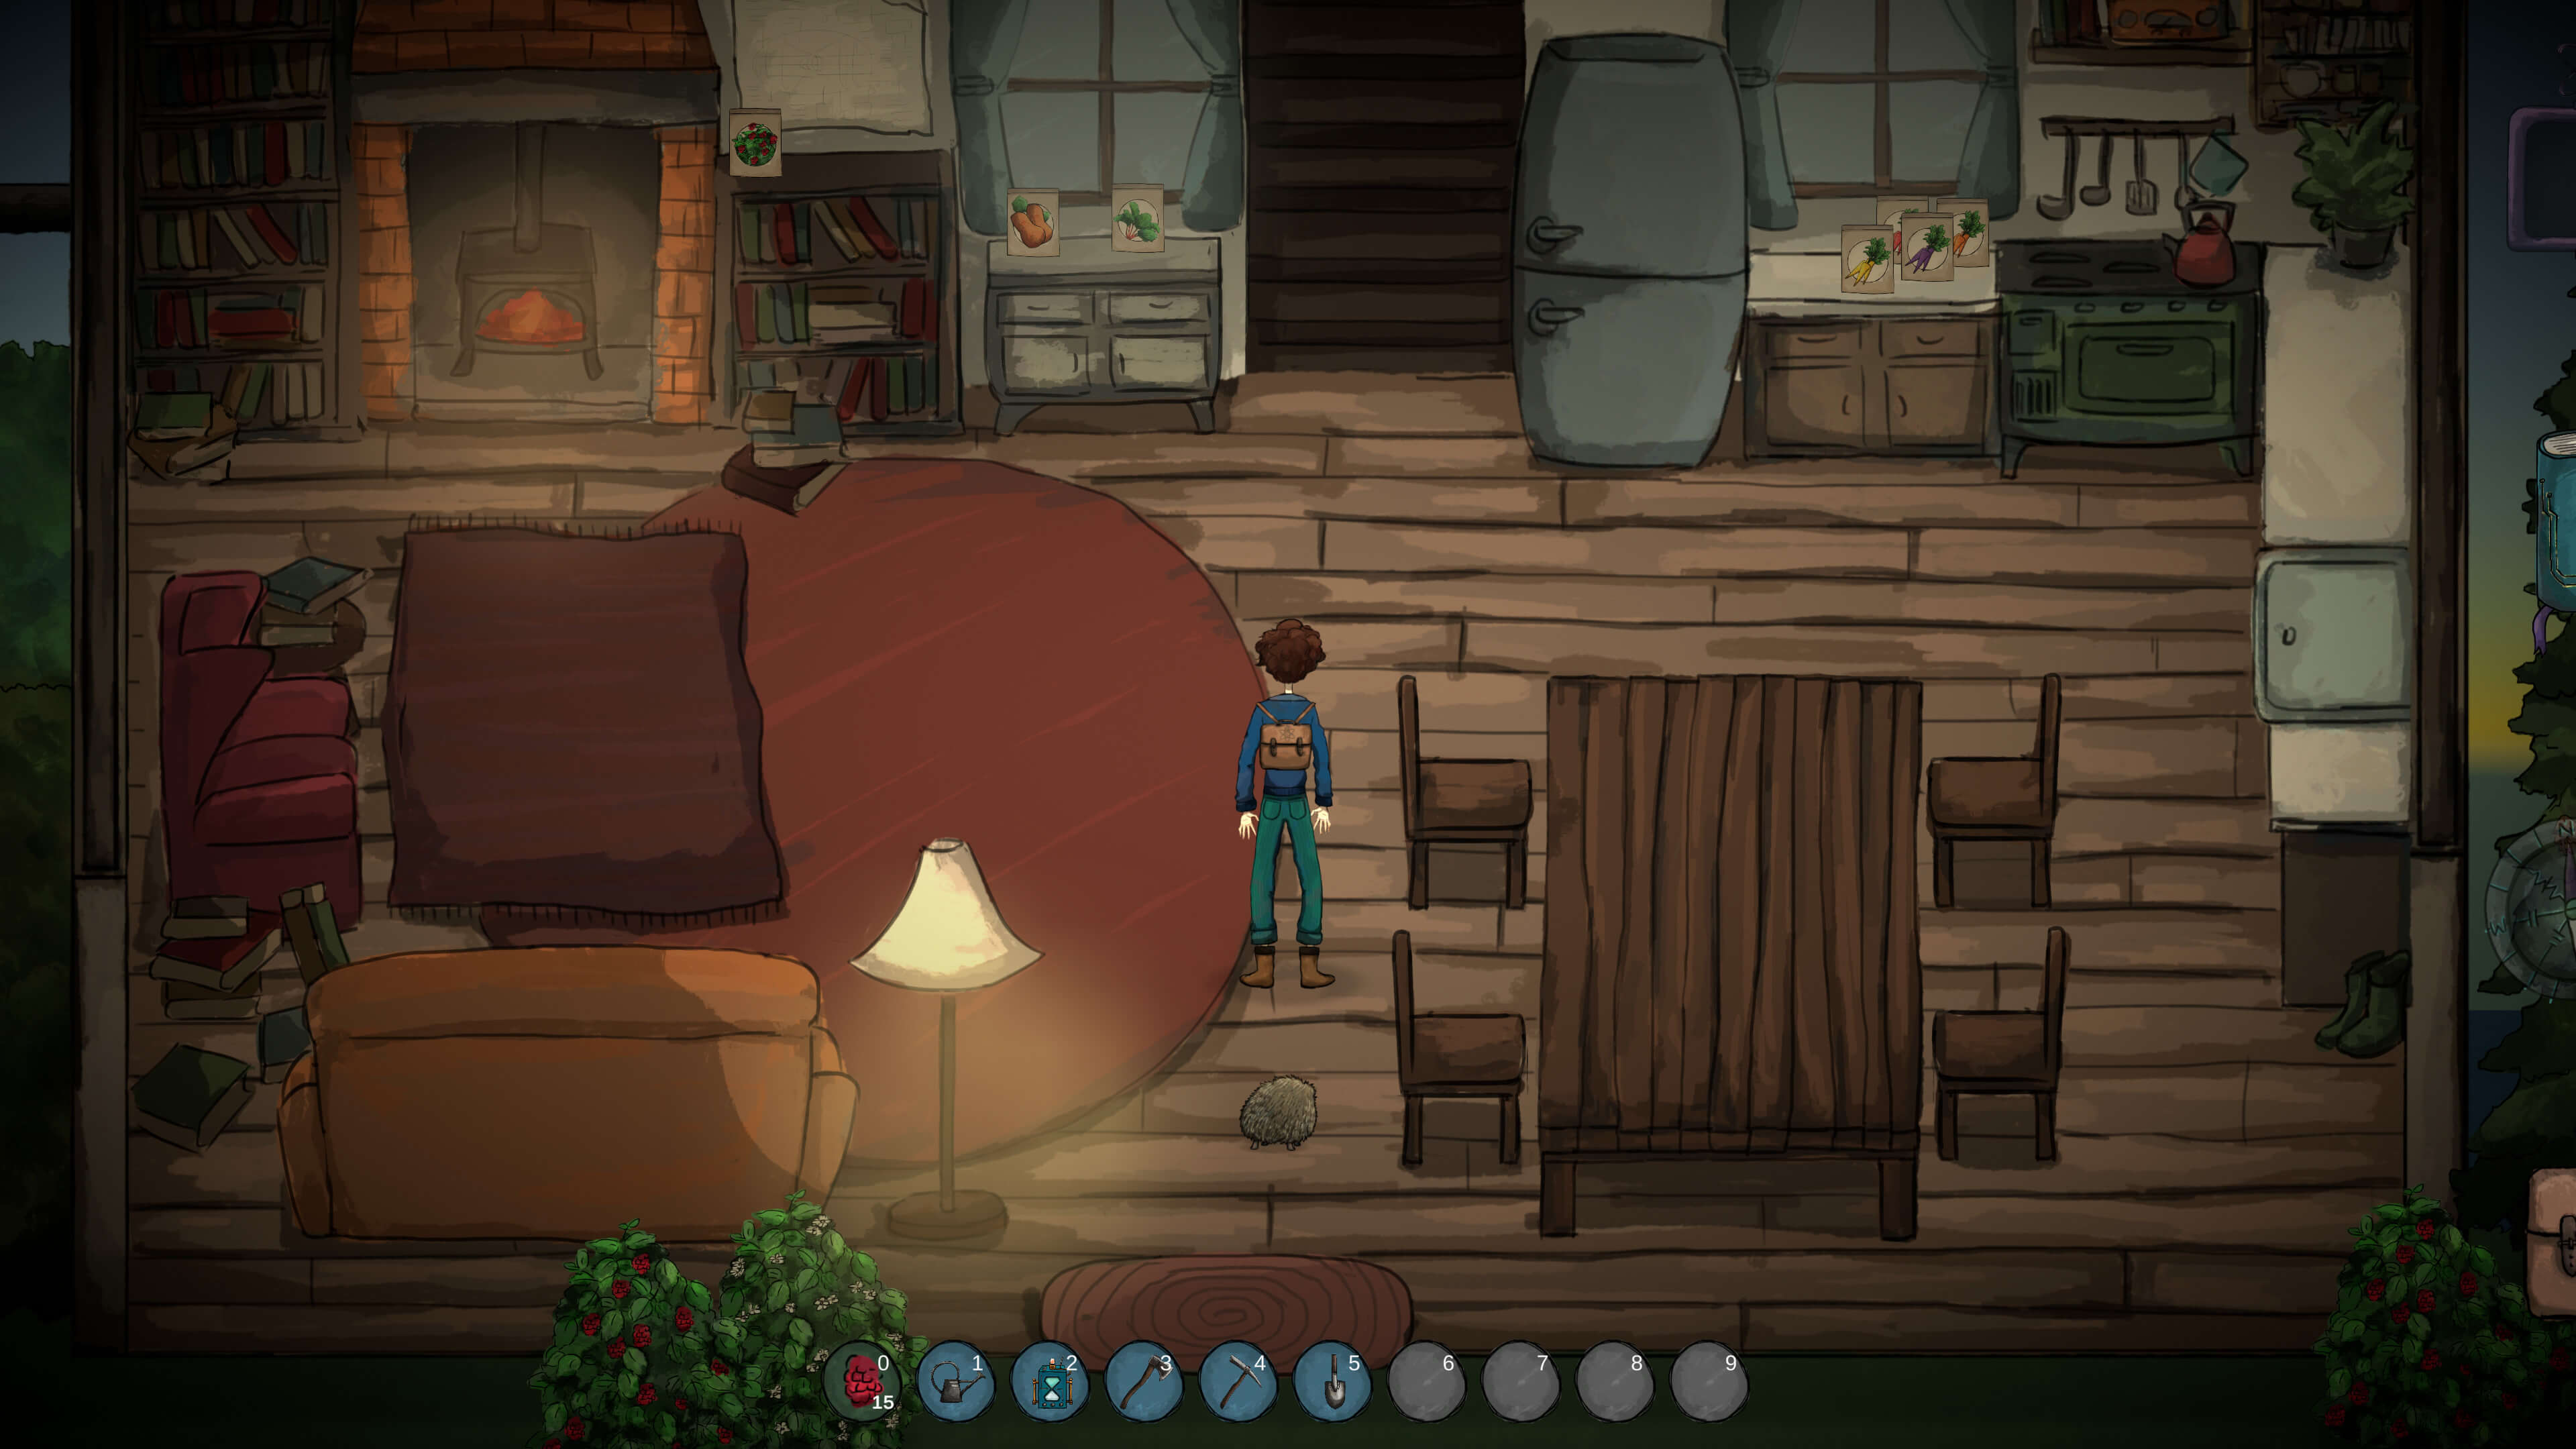 Inside Eugenia's farmhouse in Cultivate: Before Time